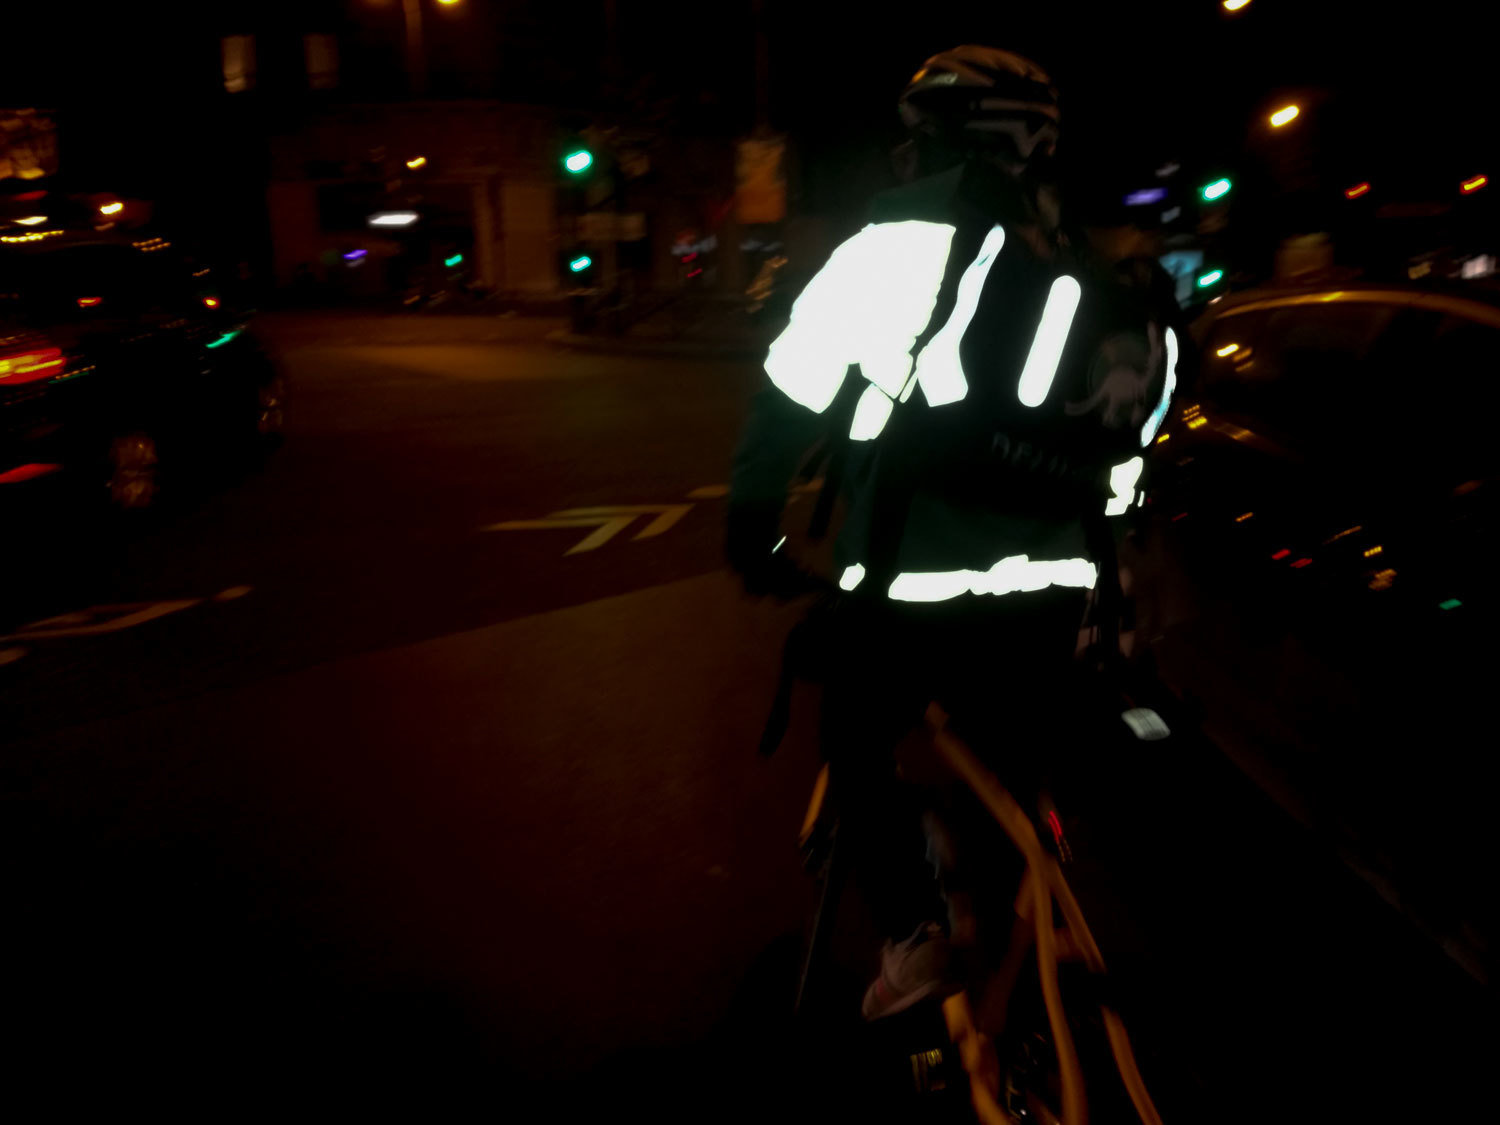 #deliver#phone#night#Paris#bike#shift#work#speed# December 2016, Paris. Bike delivery person, Laura Ben Hayoun, Audiovisual Library of the European Commission, CC BY-NC-ND